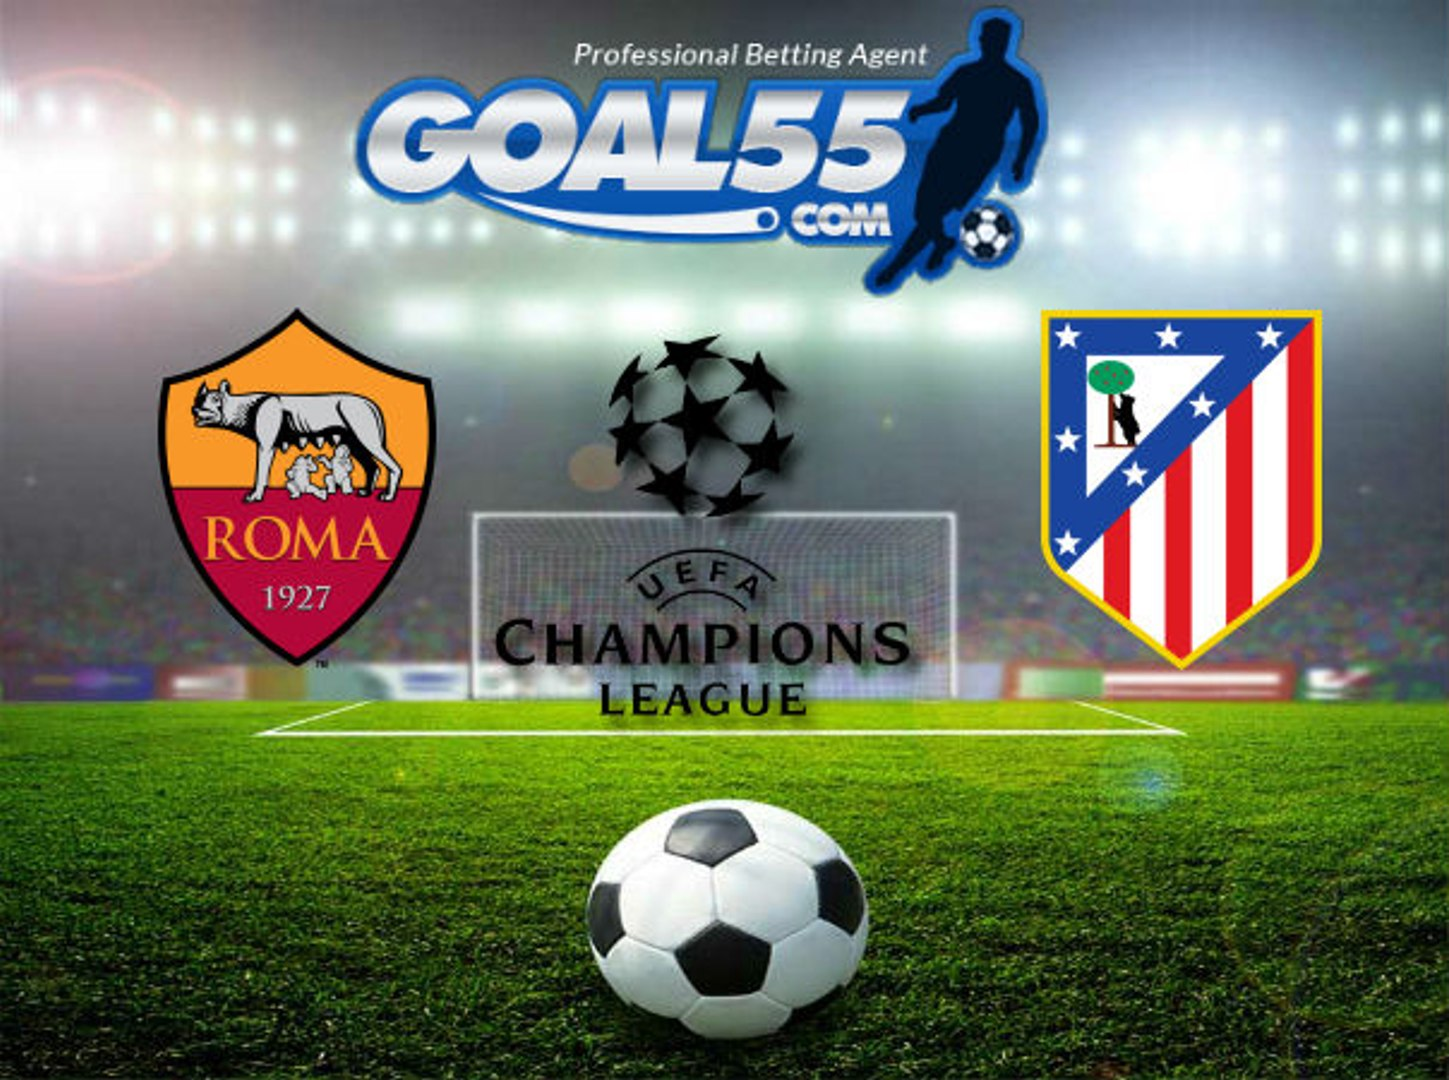 Champions League - Group Stage [ROMA vs ATLÉTICO MADRID] FOX Sports